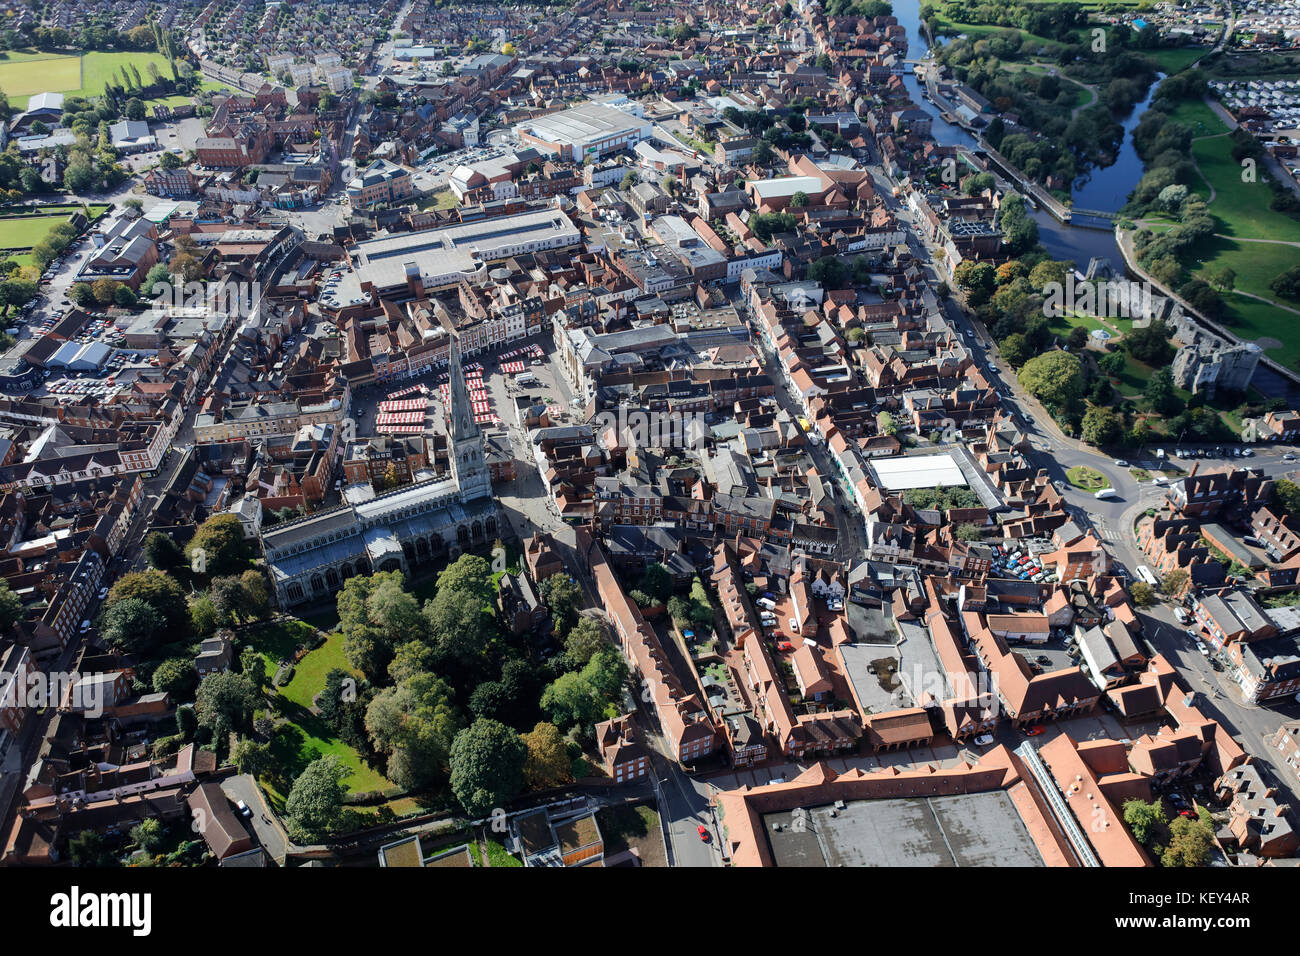 An aerial view of the town centre of Newark-on-Trent - Stock Image